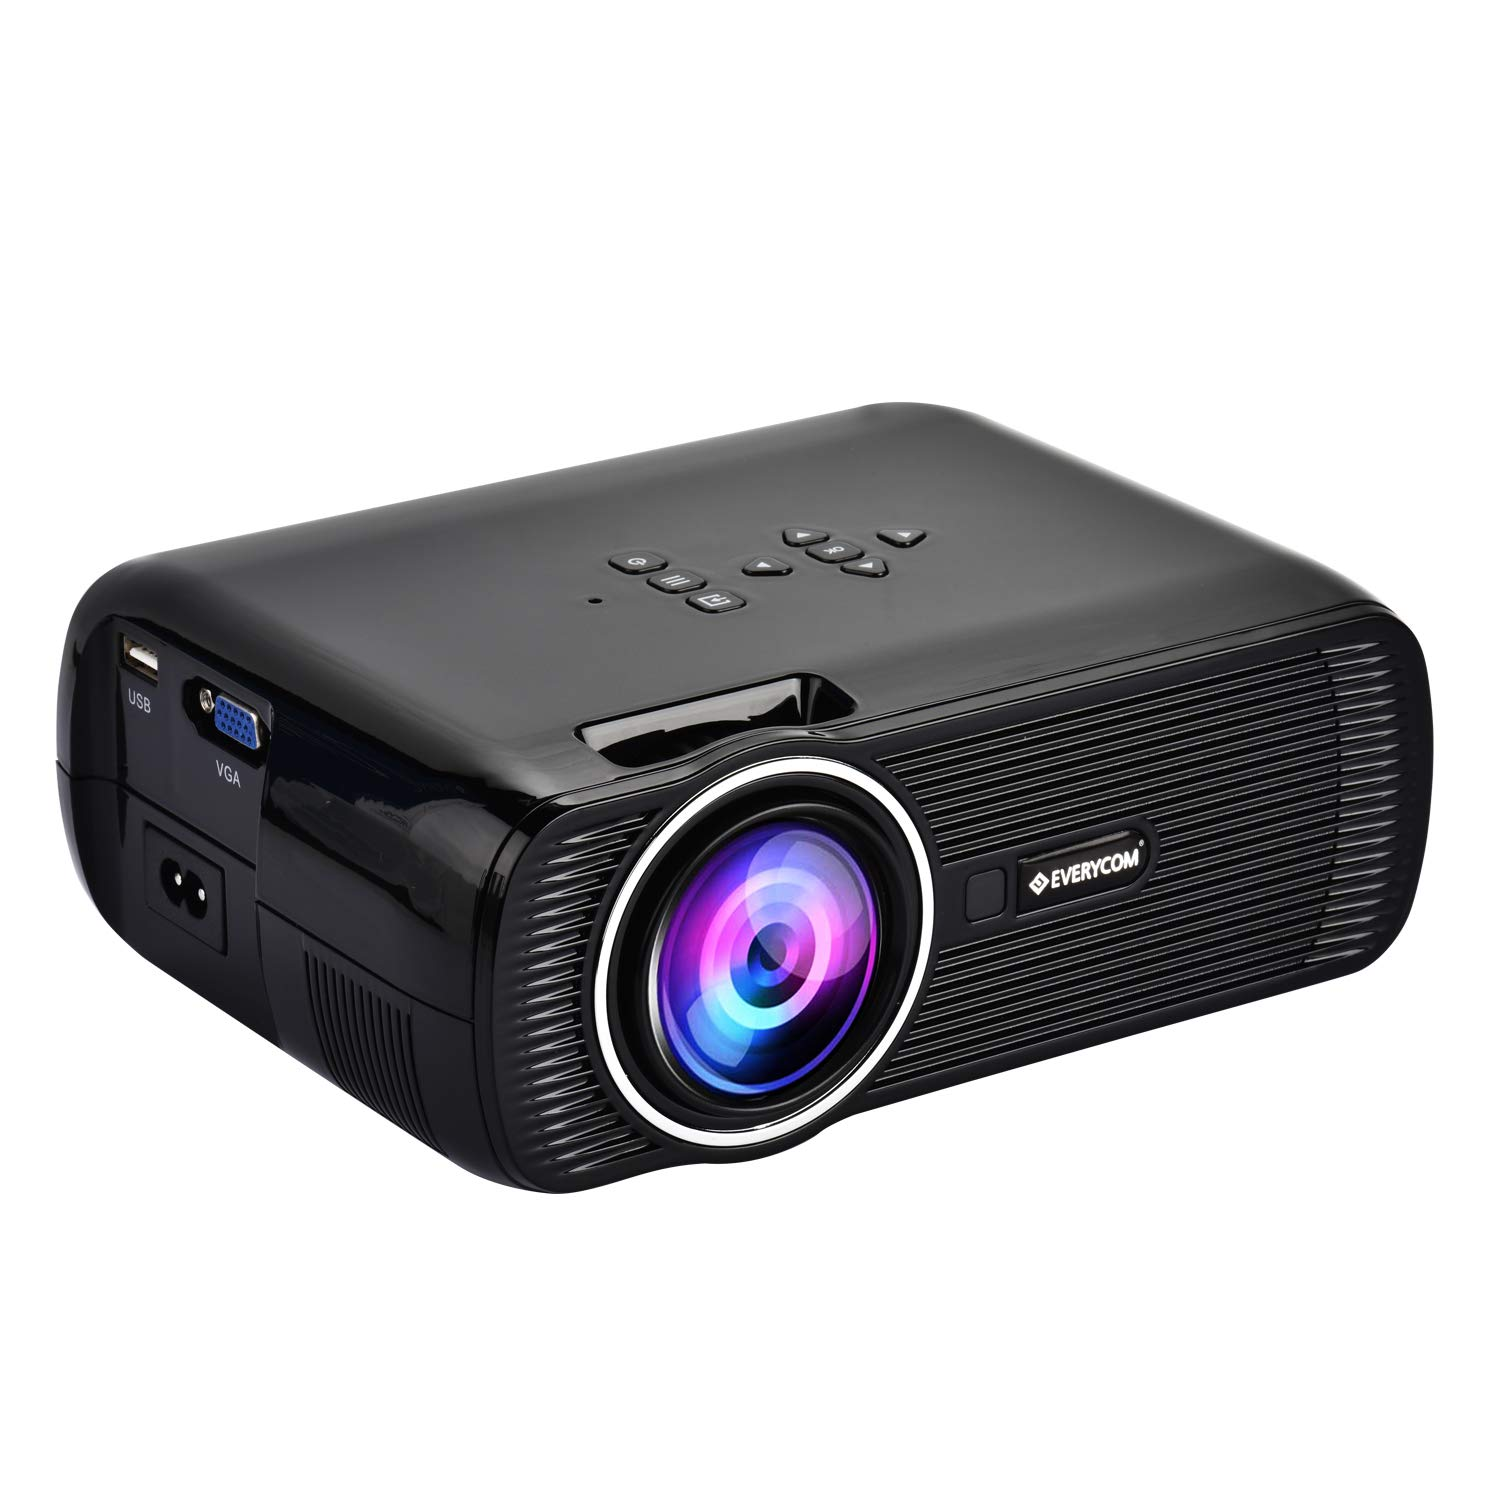 Everycom X7 LED Full HD Projector review